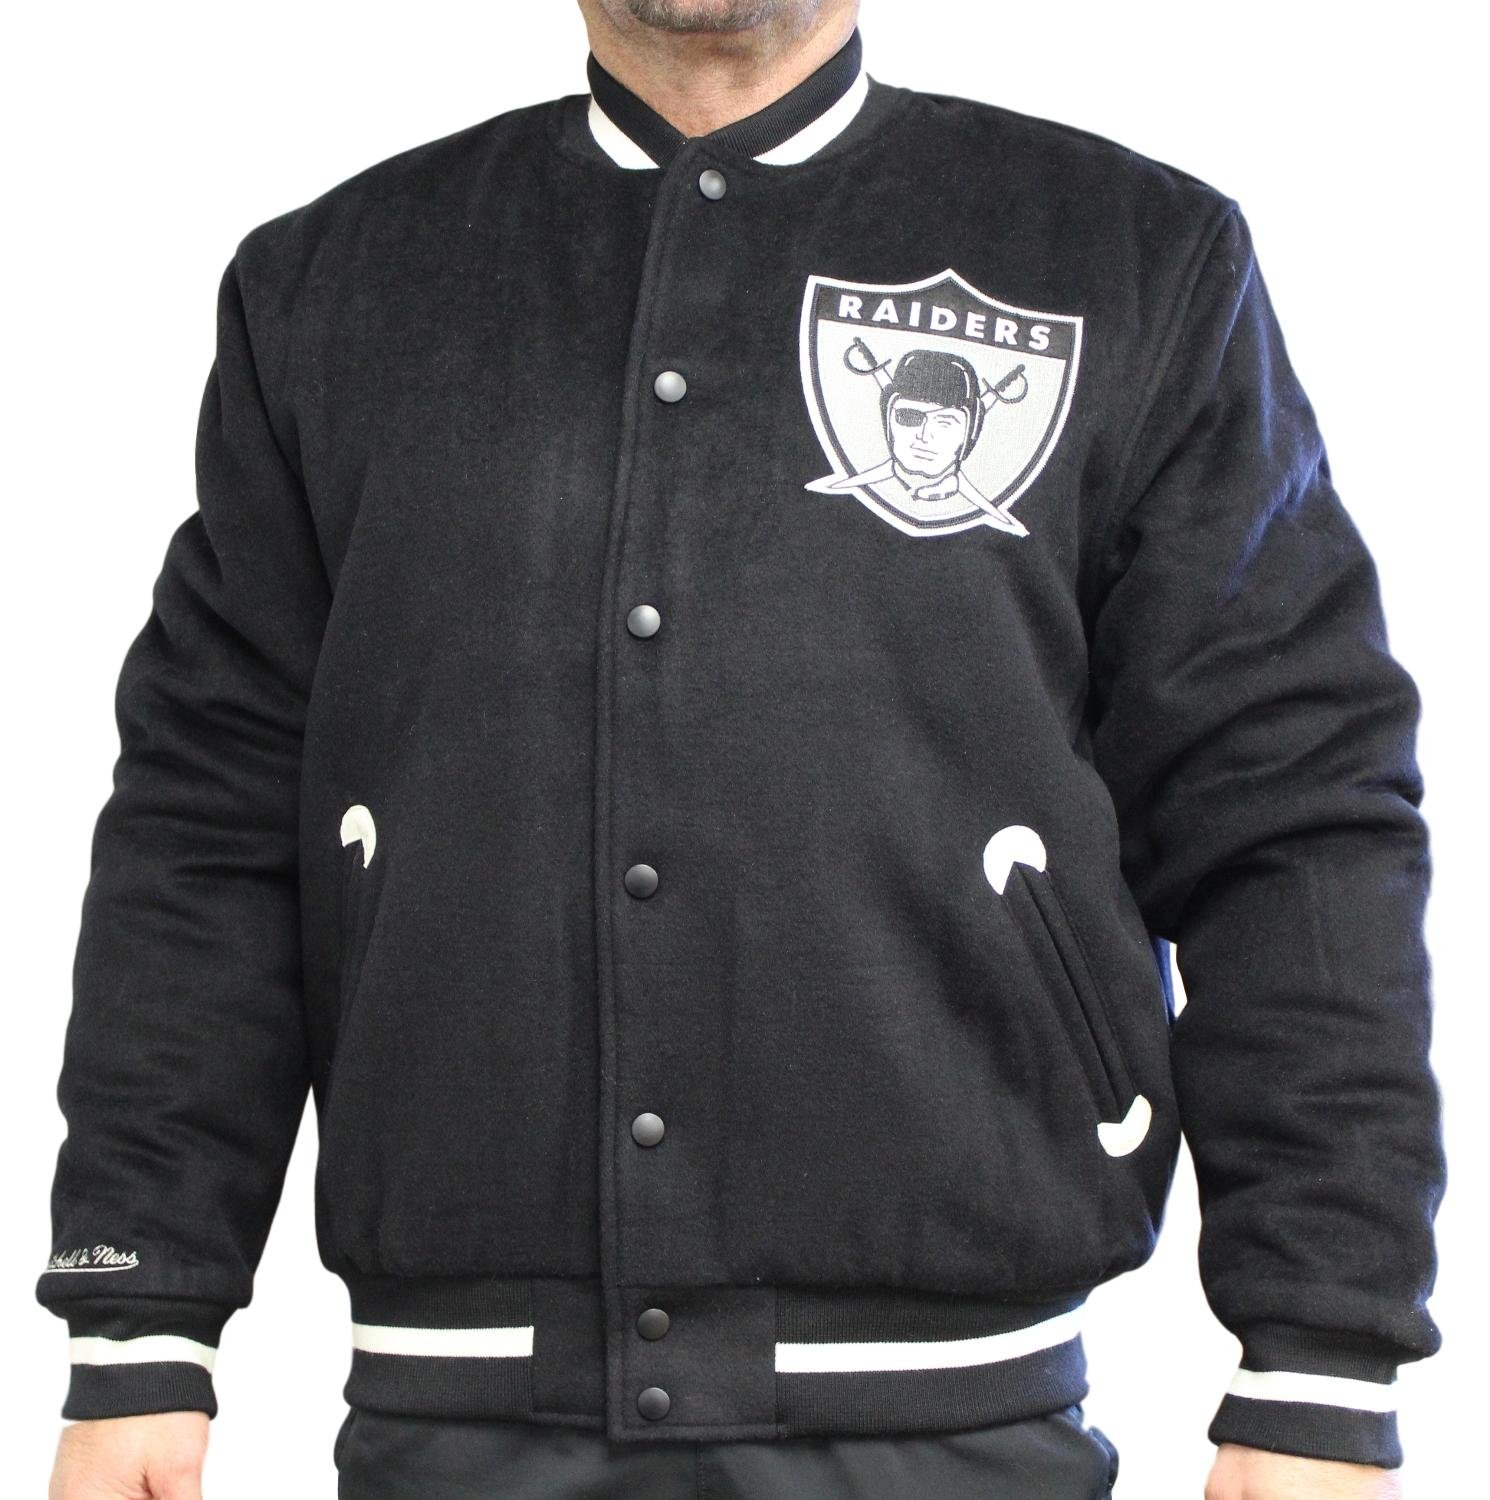 eaf5f6d0 Mitchell & Ness Oakland Raiders NFL in The Stands Premium Varsity Jacket